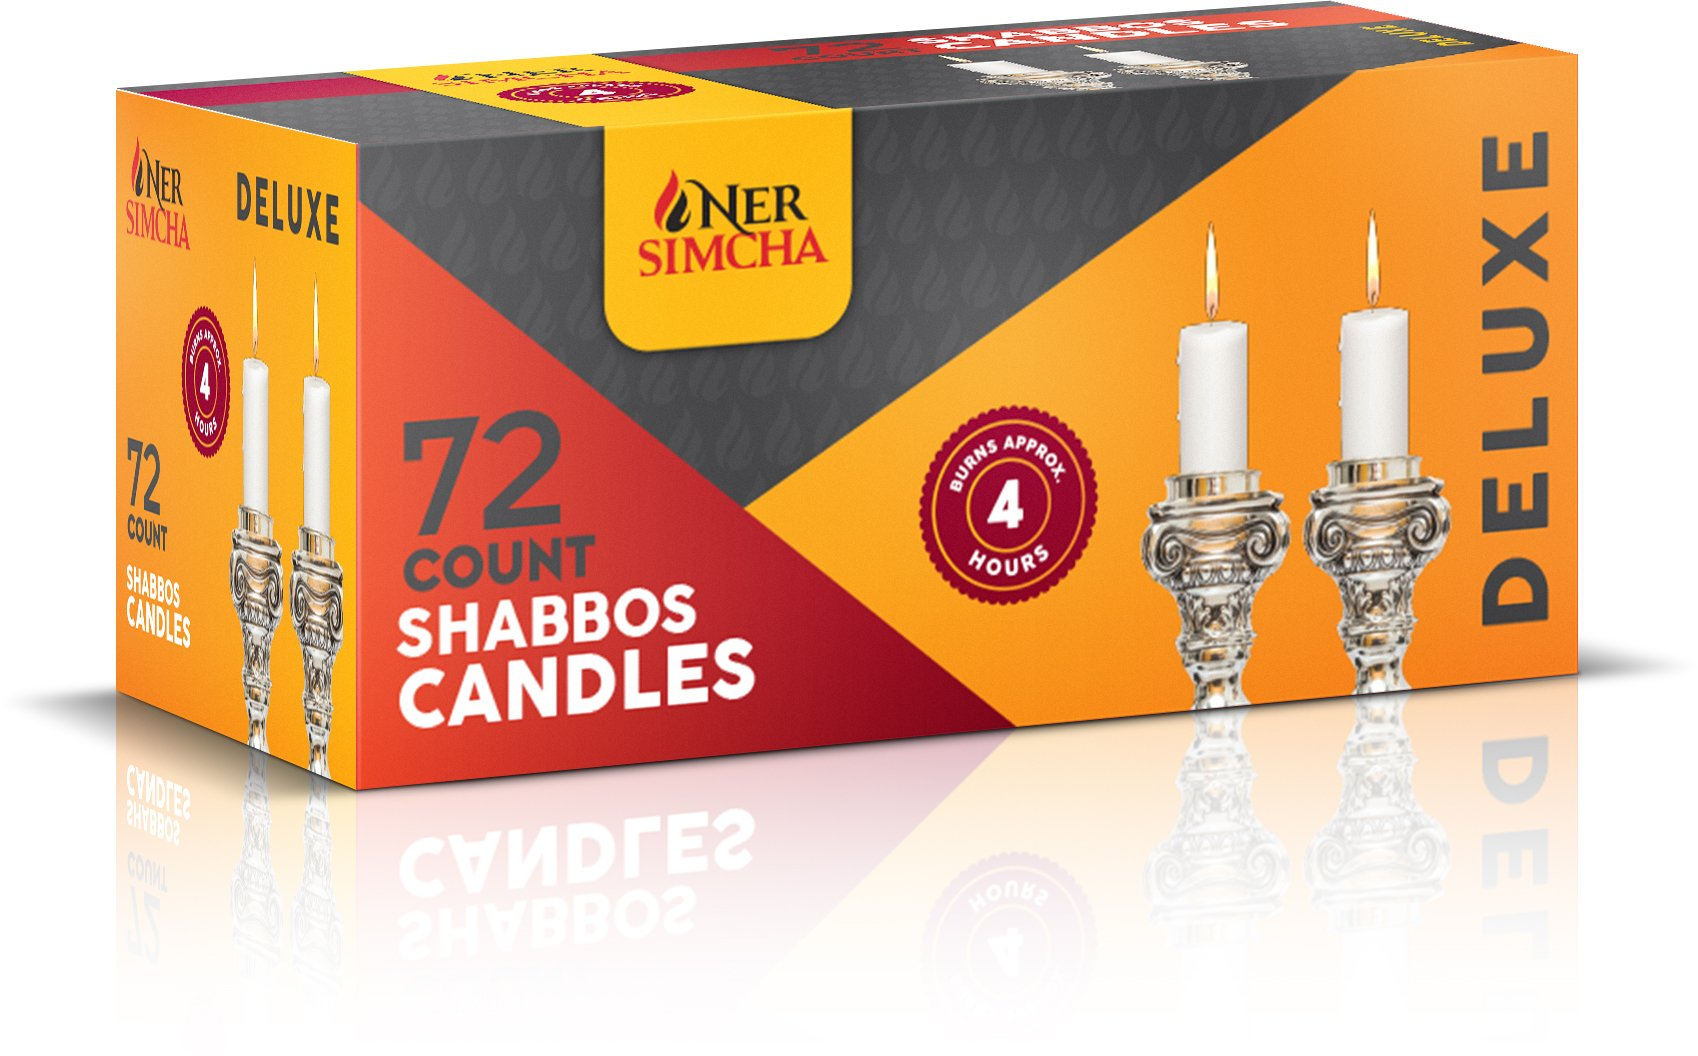 Ner Simcha Dripless Taper Candles 5''inch Tall Shabbat, Wedding, Home & Holiday Decoration, Dinner Candles Set of 72 4 Hour White Shabbat Candles by Ner Simcha